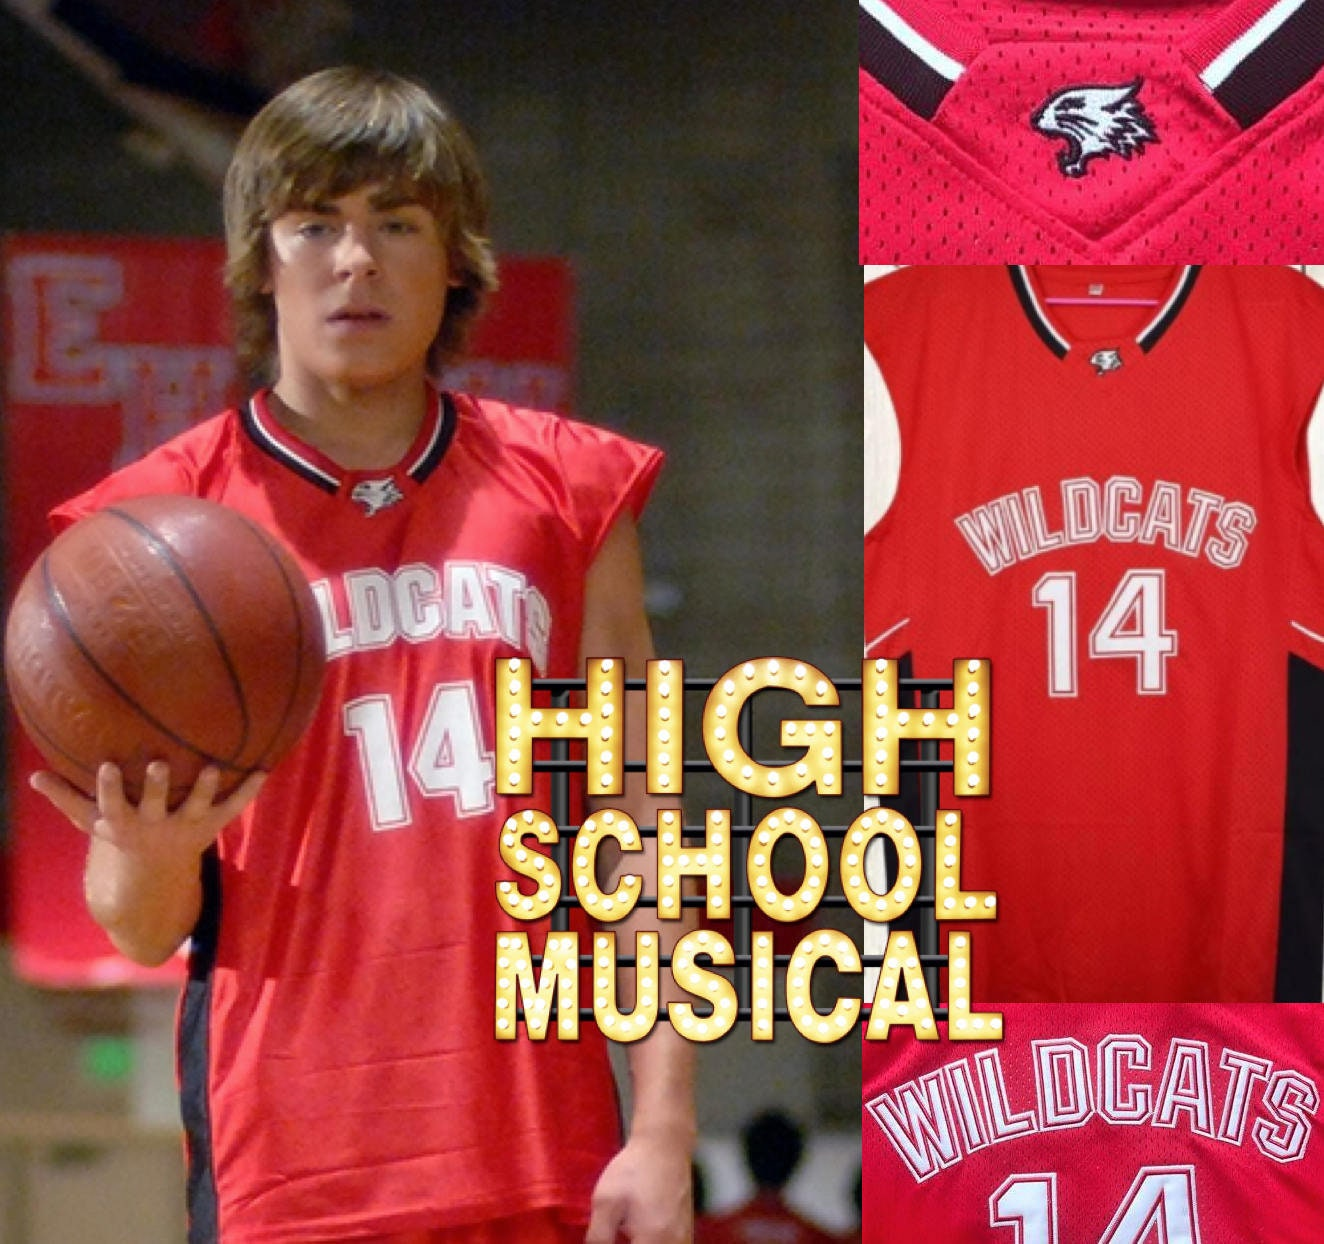 Troy bolton wildcats high school musical jersey zac efron etsy jpg  1324x1244 Jersey high school musical 6688255e9